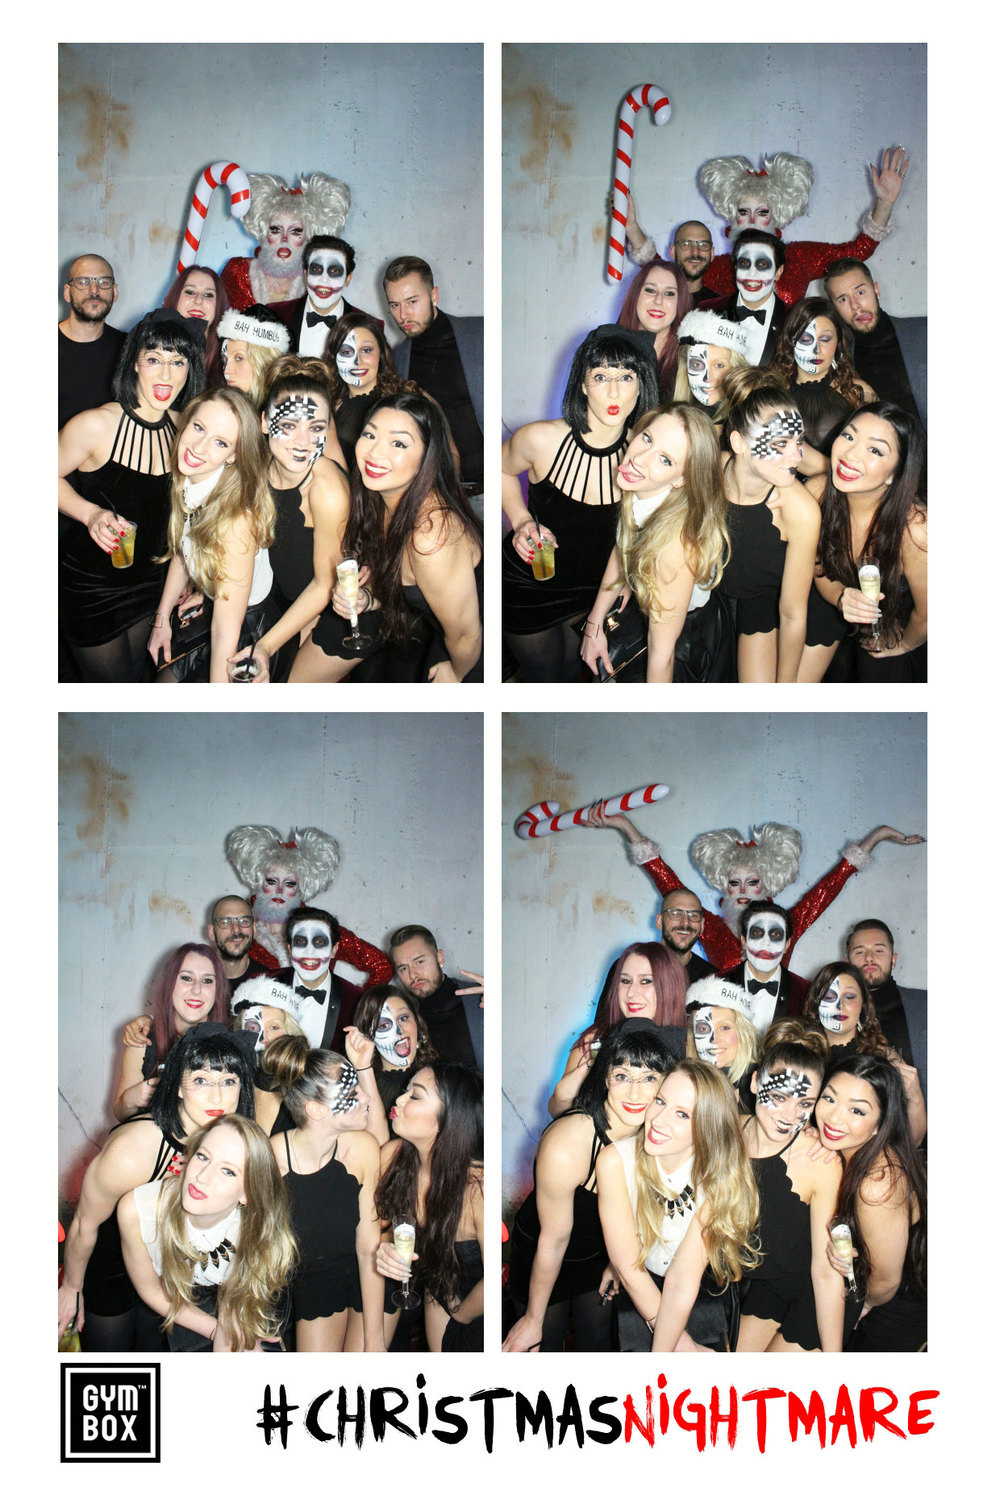 The-Obscura-Photo-Booth-Gymbox-photobooth.jpg